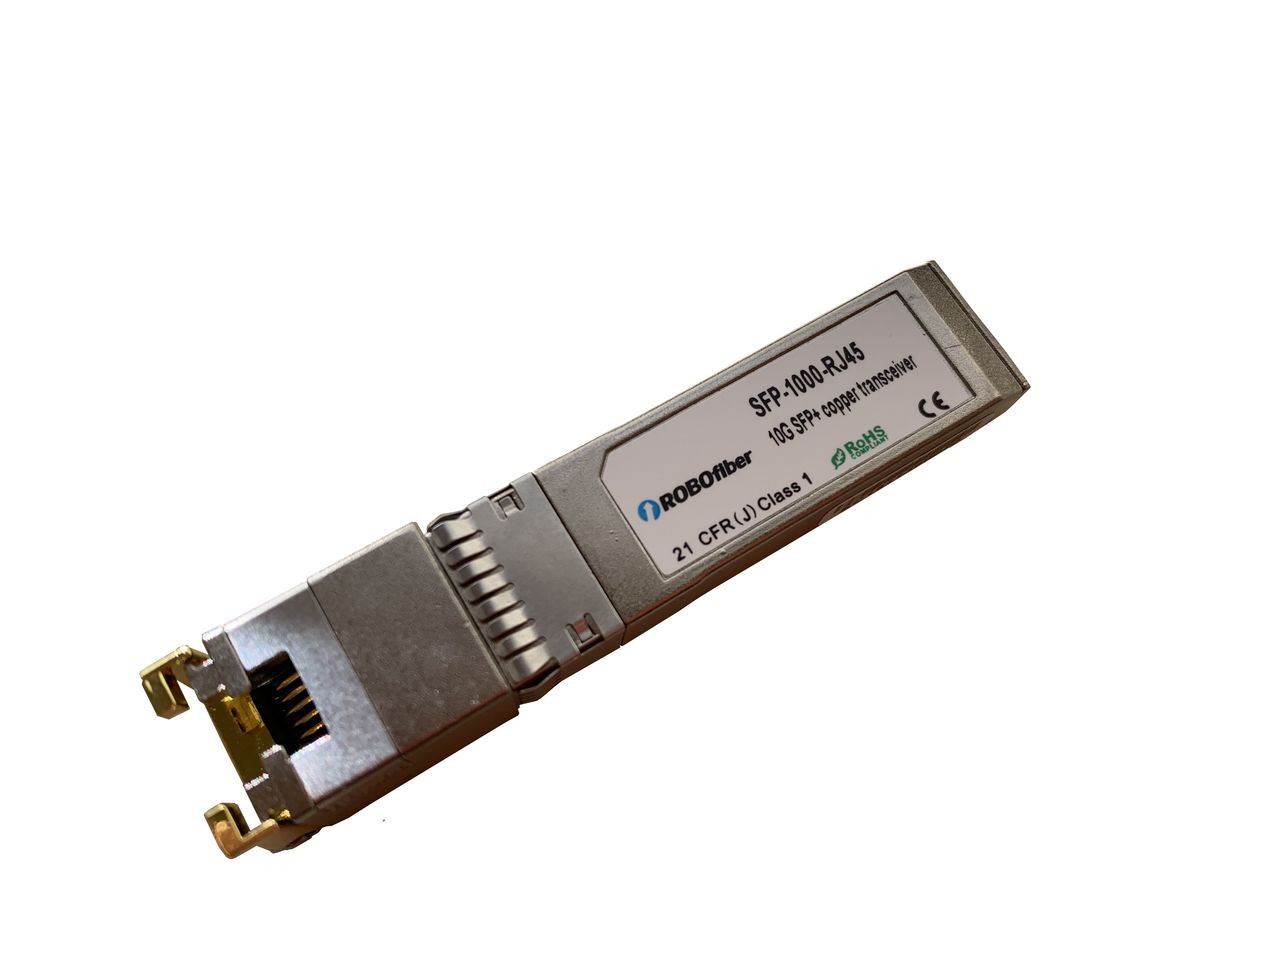 SFP-1000-RJ45 - 10GBase-T copper SFP+ transceiver module, Cisco ready